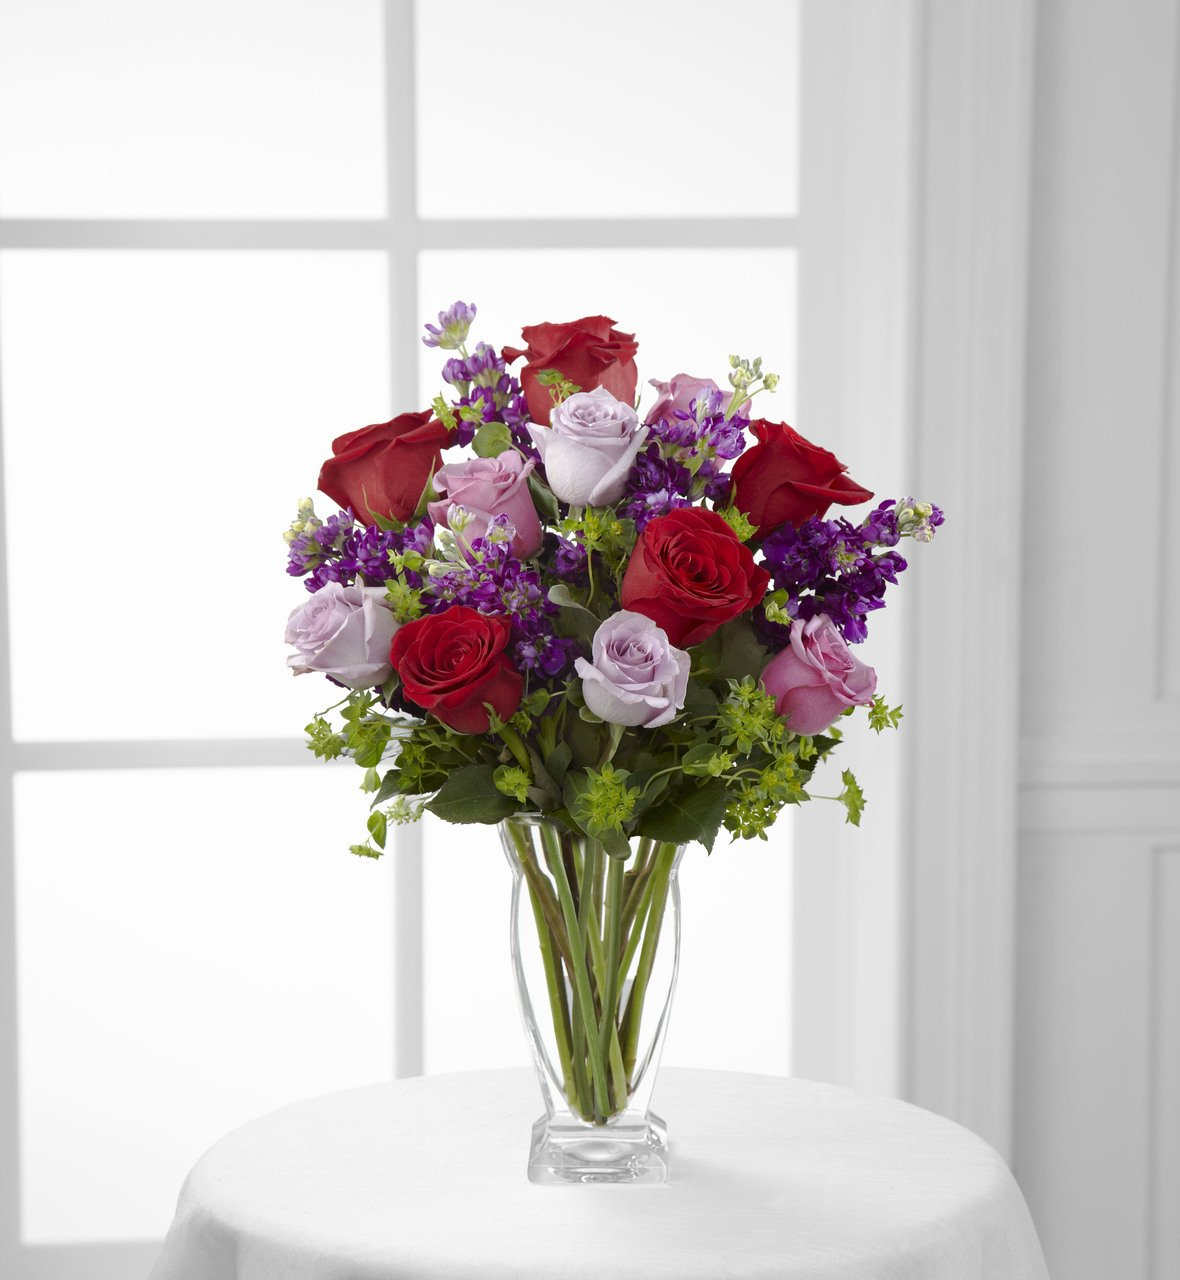 Garden Walk Bouquet - Fresh Flowers Hand Delivered in Albuquerque Area by FTD (Image #1)